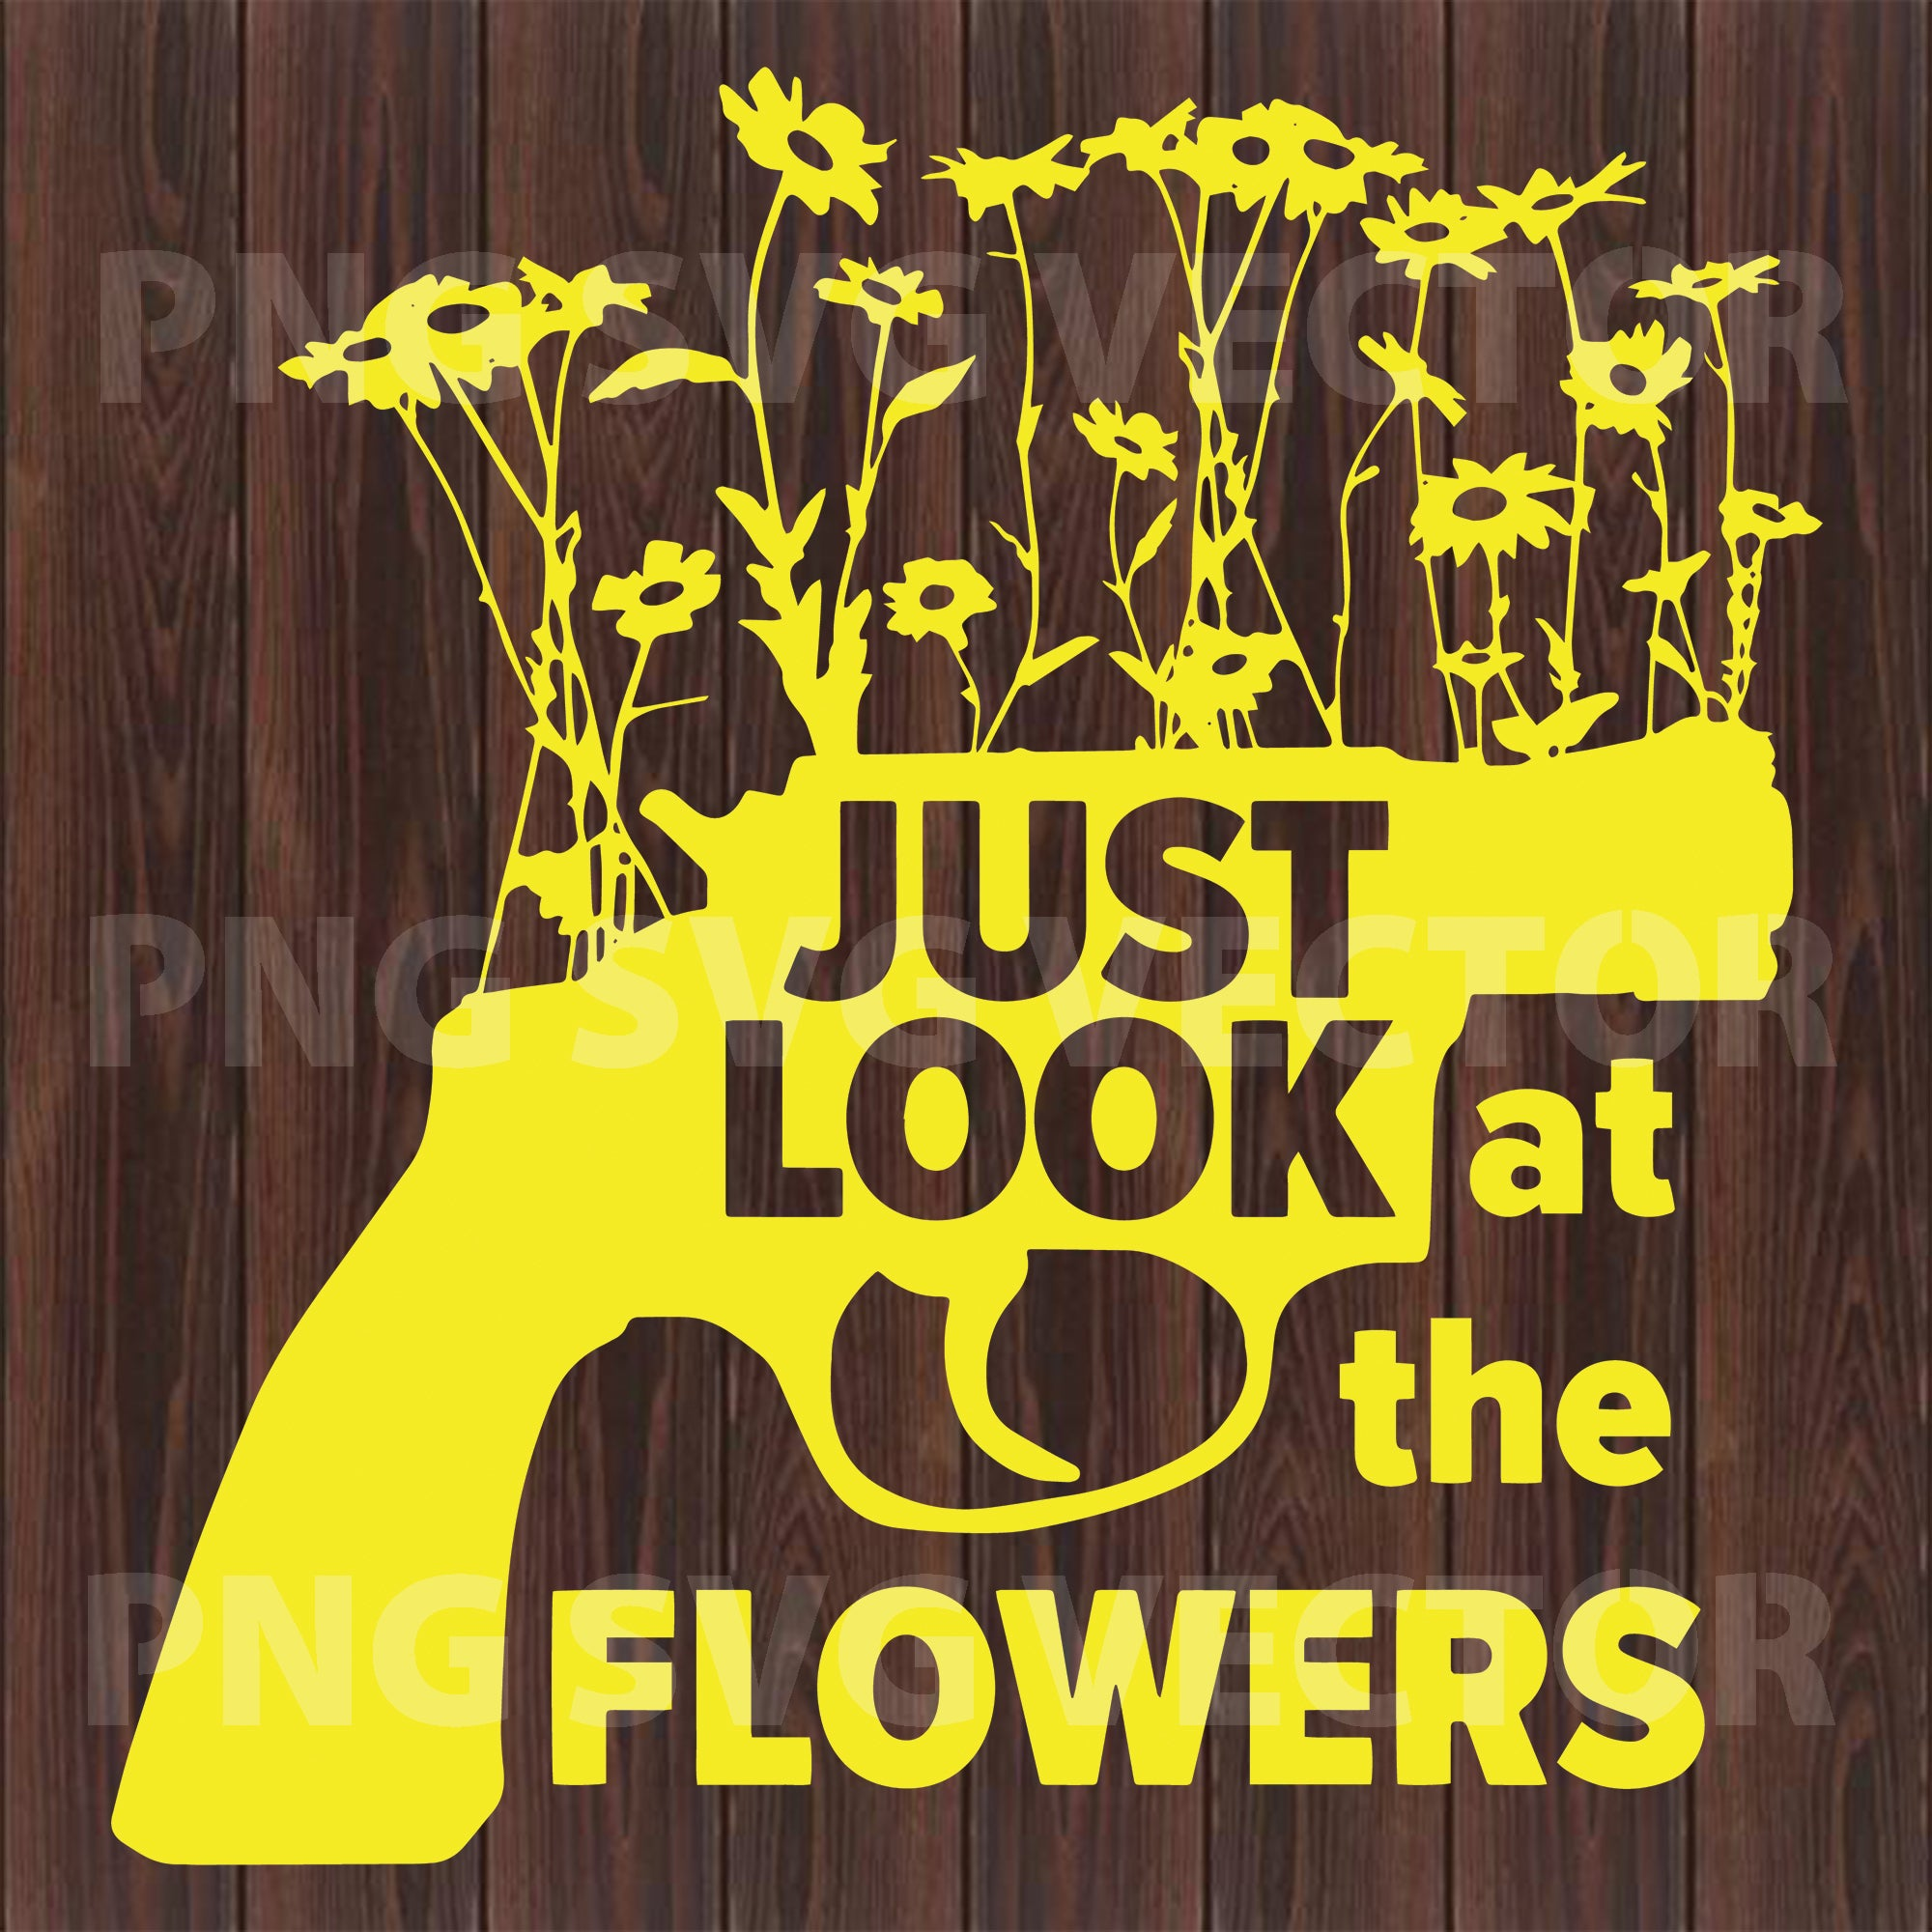 Just look at the flowers Gun Svg, Gun Svg, Gun Vector, Gun Cutting Files For Cricut, SVG, DXF, EPS, PNG Instant Download